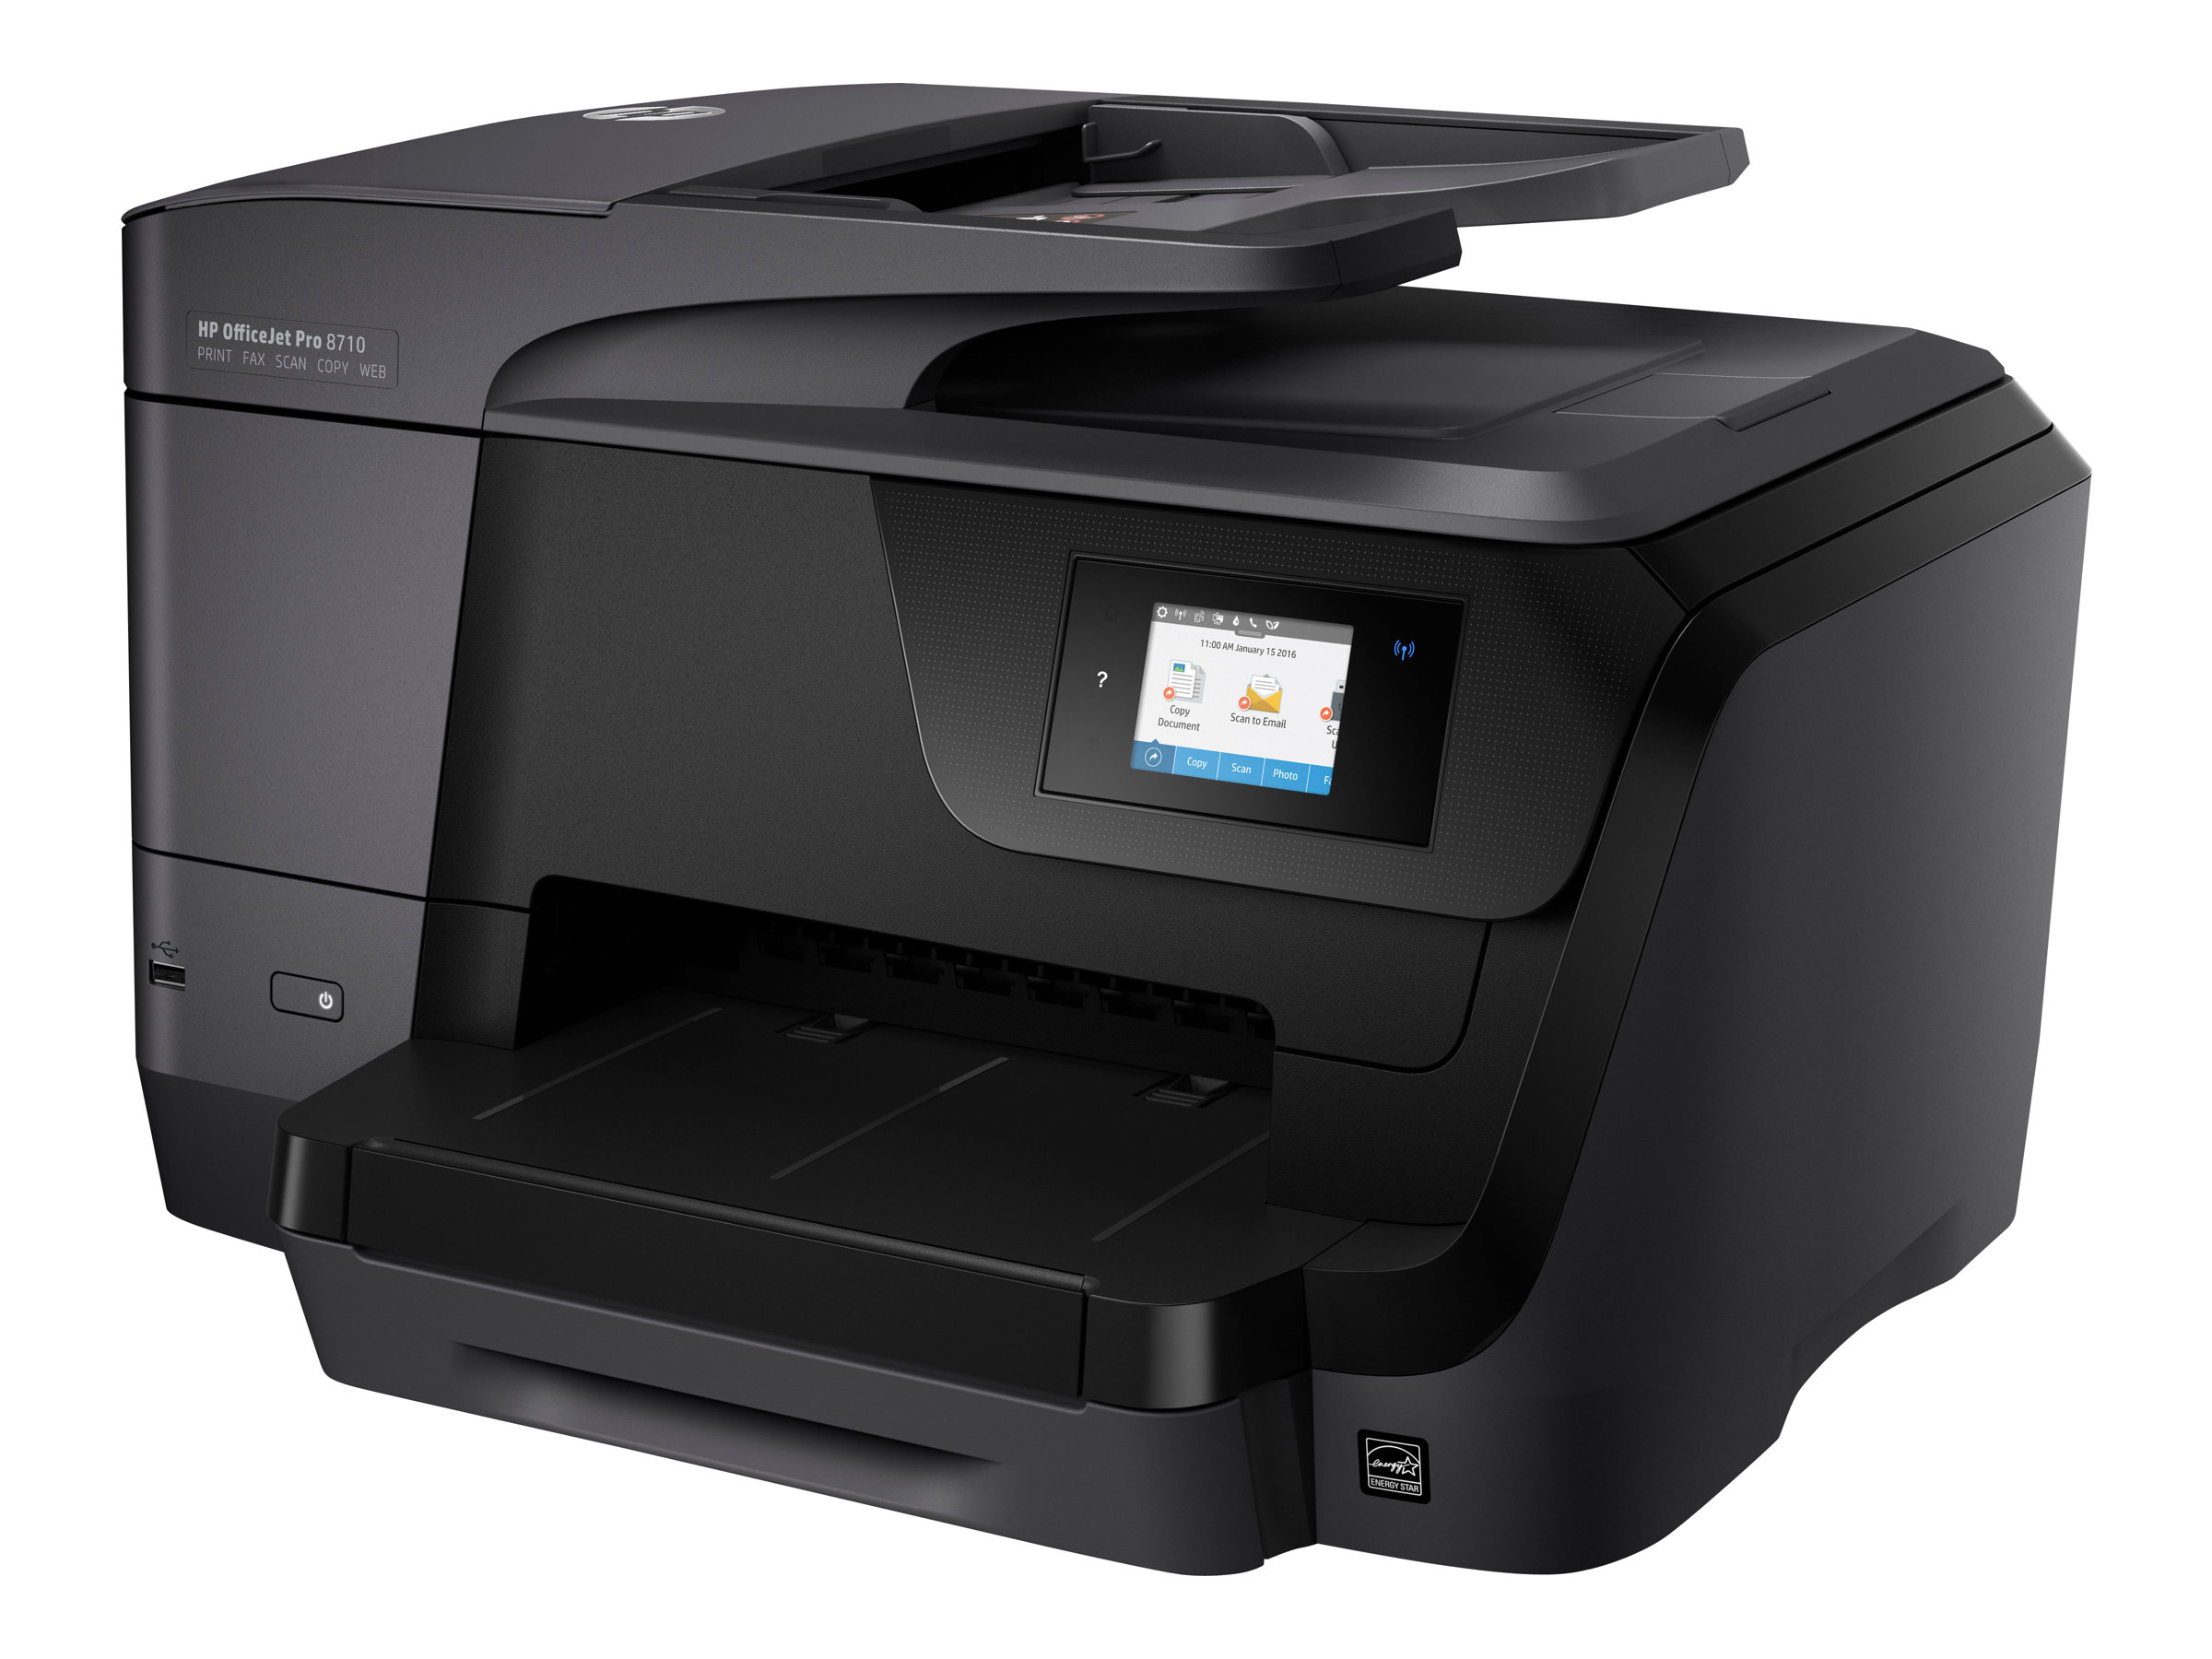 HP Officejet Pro 8710 All-in-One - Multifunktionsdrucker - Farbe - Tintenstrahl - Legal (216 x 356 mm) (Original) - A4/Legal (Medien)